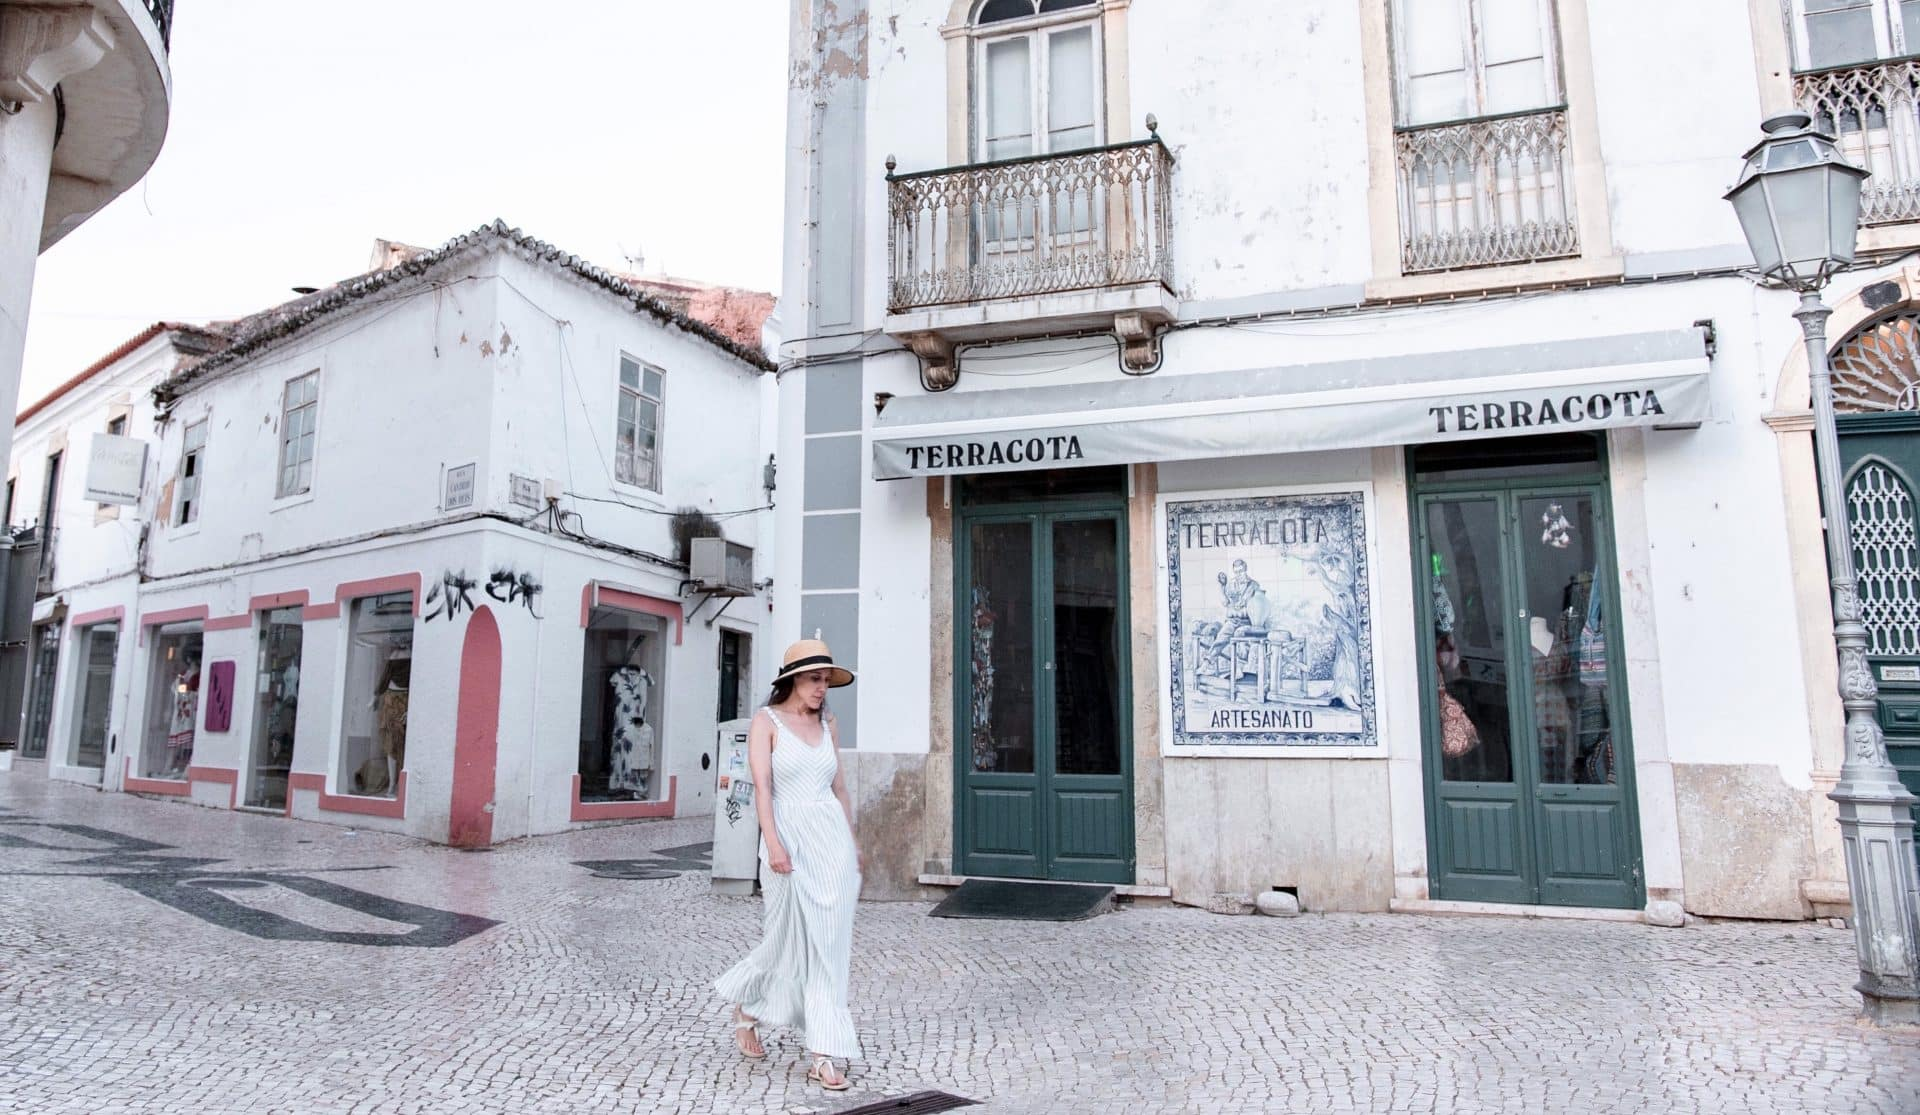 Explore Old Town Lagos in Algarve for Instagram Photos